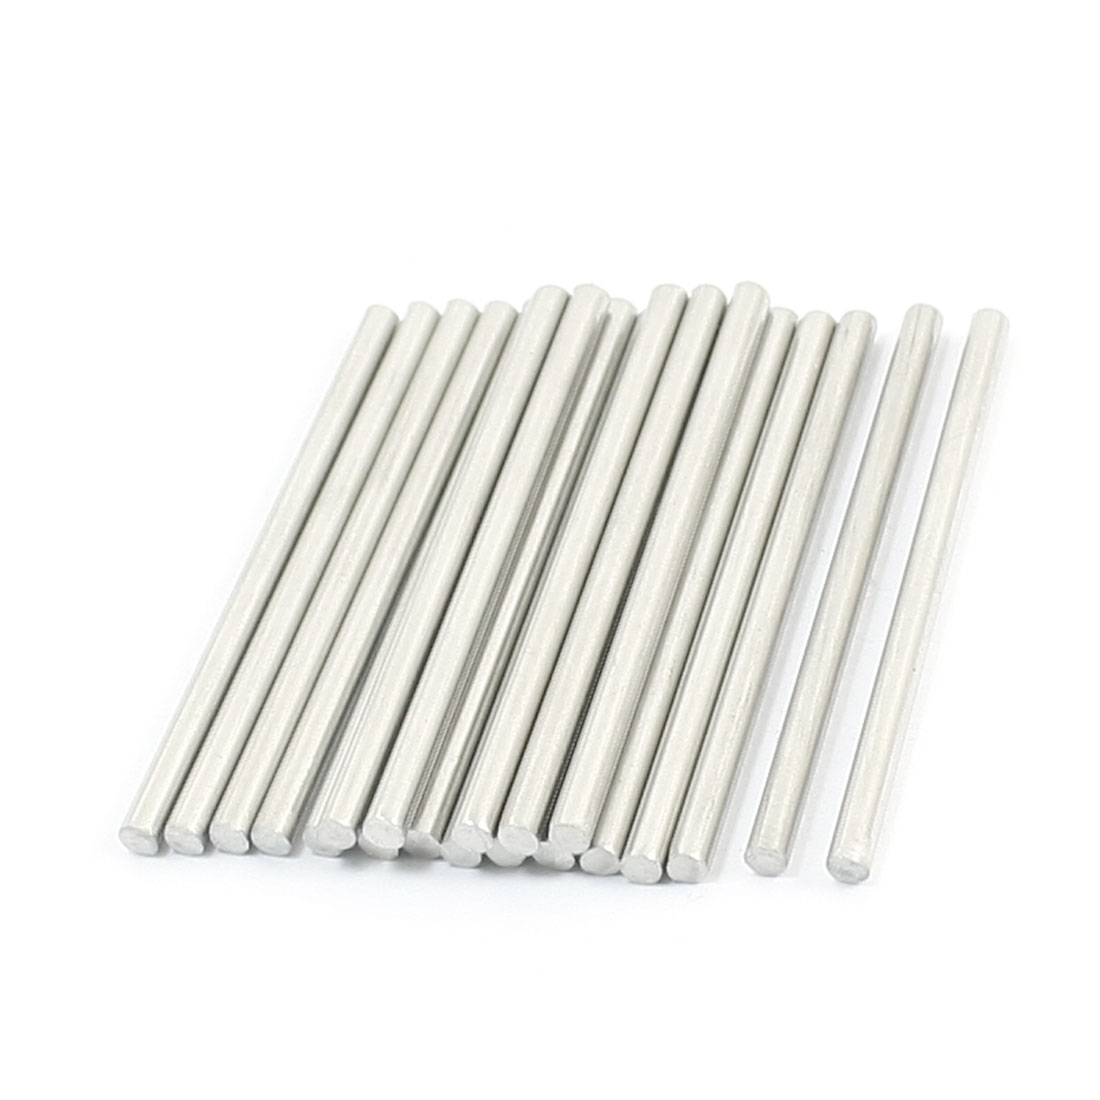 20pcs RC Model Airplane Replacement Stainless Steel Round Bars 45x2.5mm